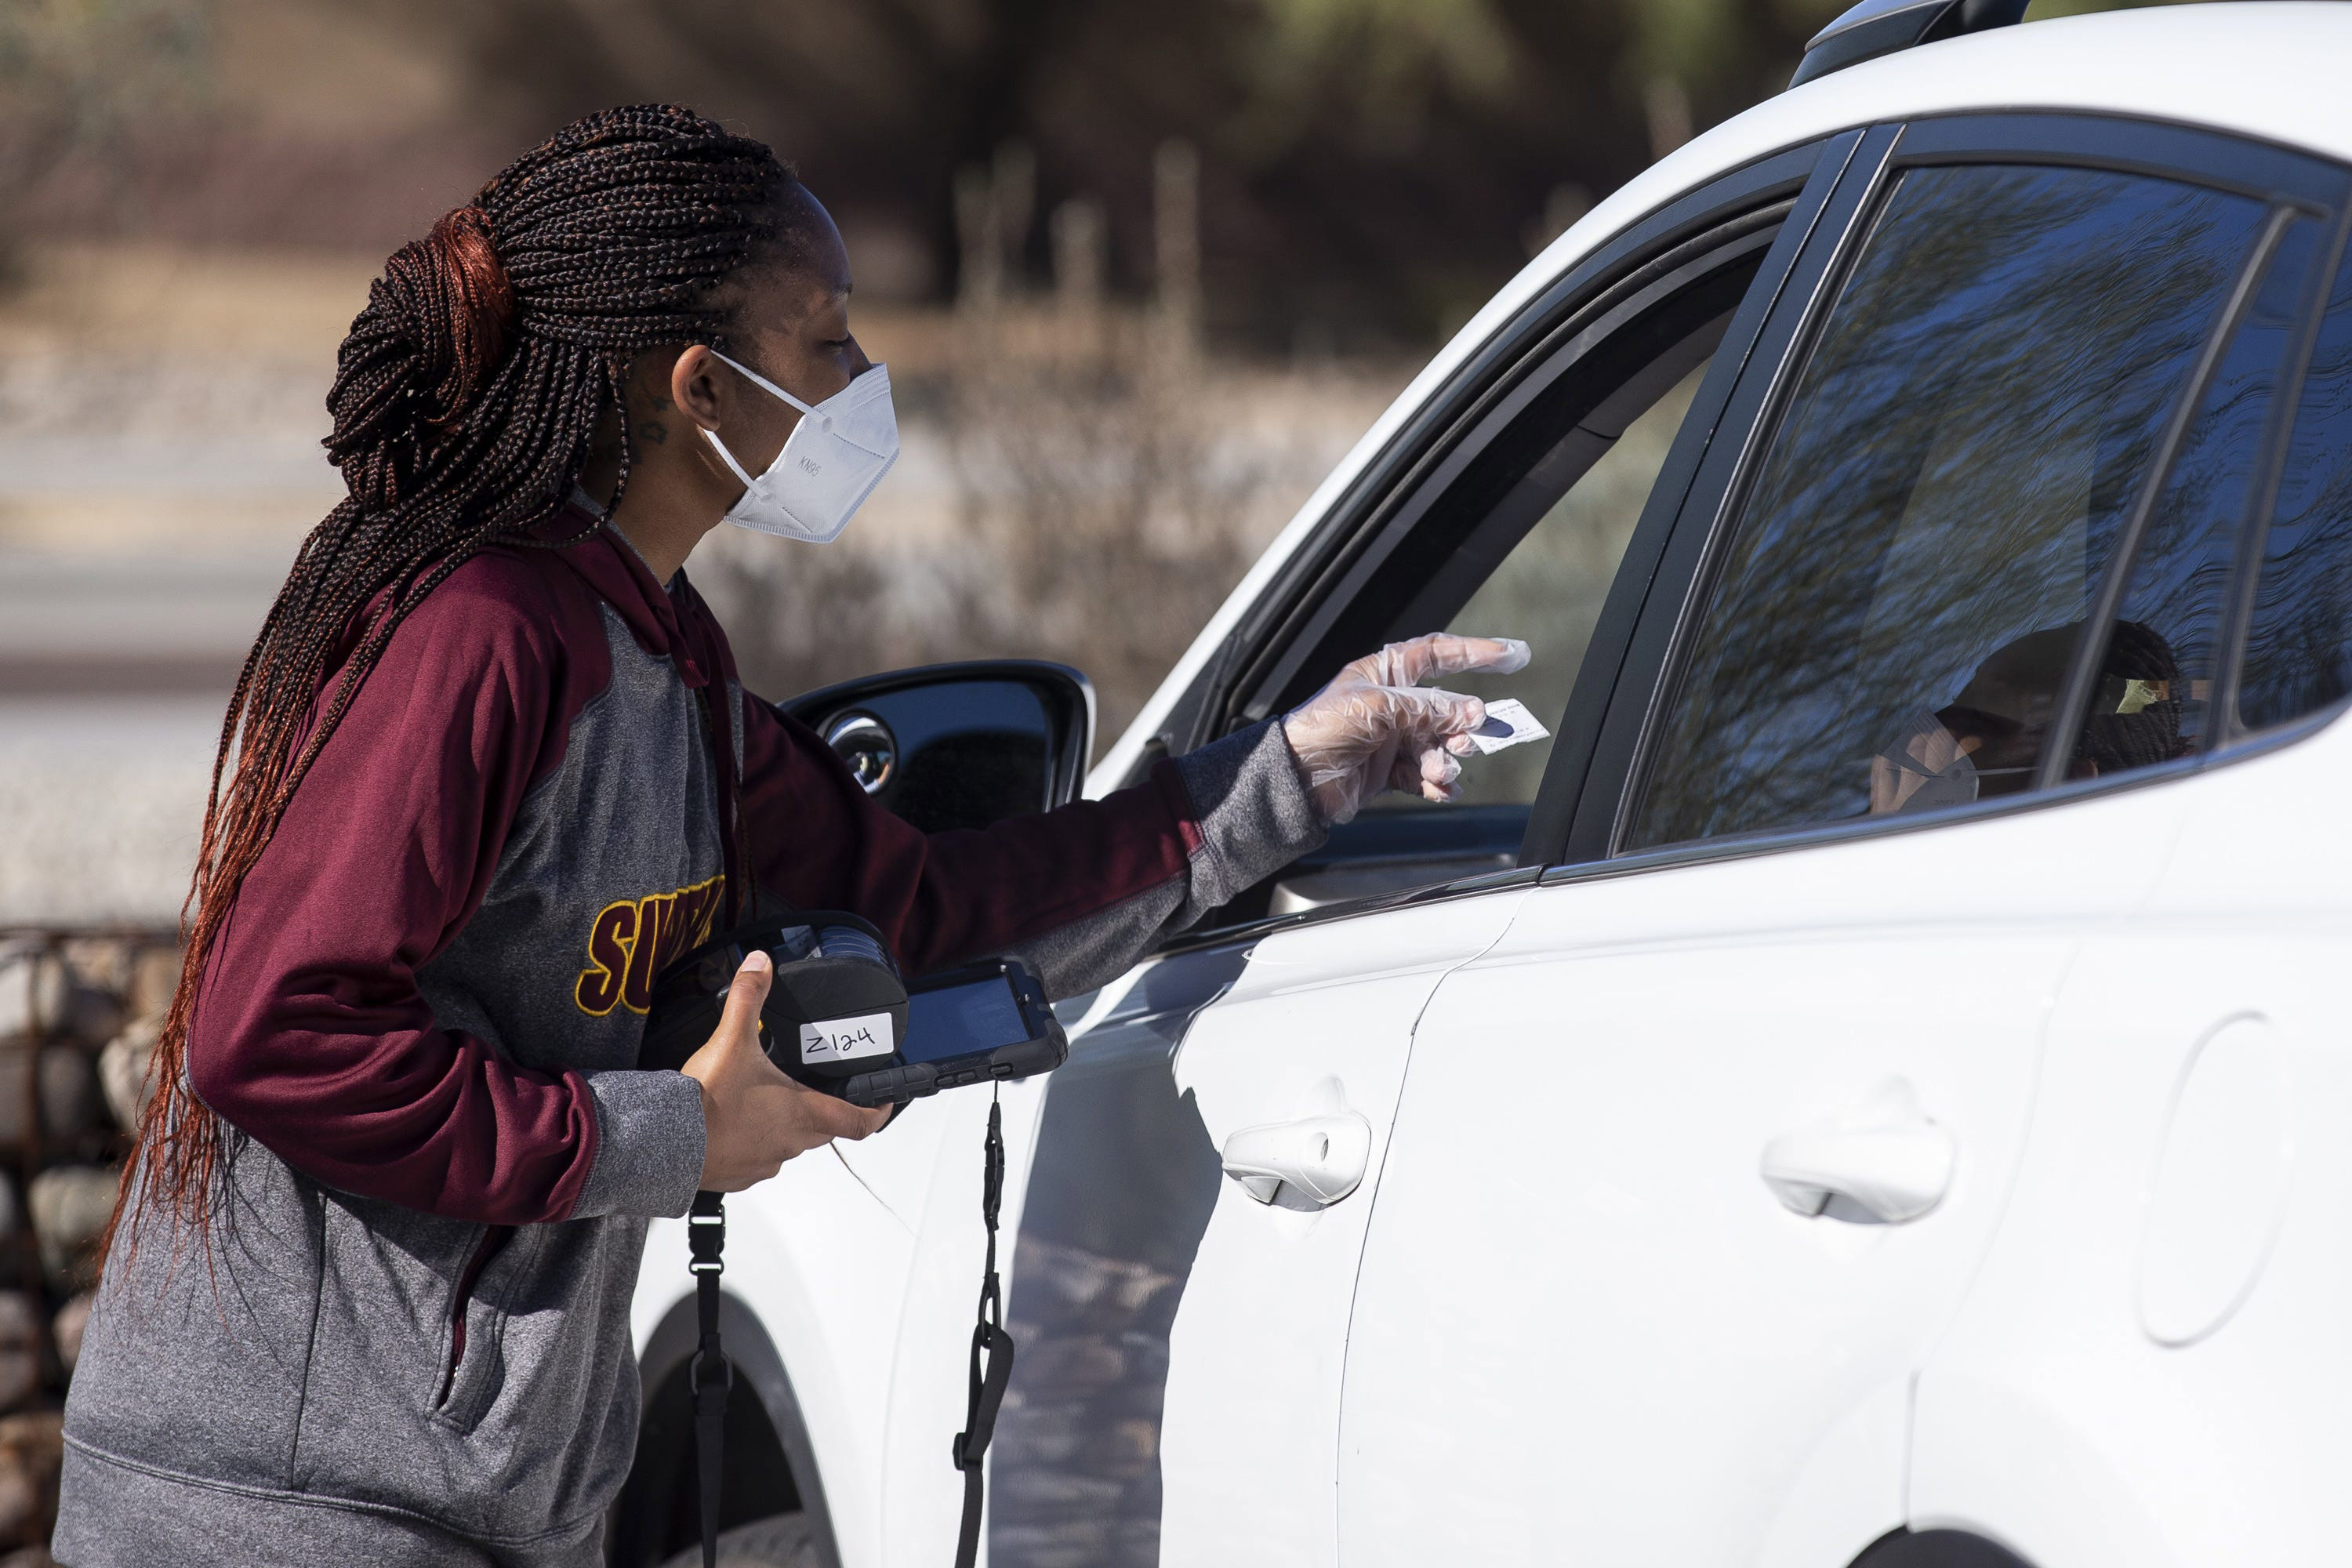 Latajah Byron, a medical assistant at Embry Women's Health, registers a person at a COVID-19 testing site on December 2 in Peoria, Arizona.